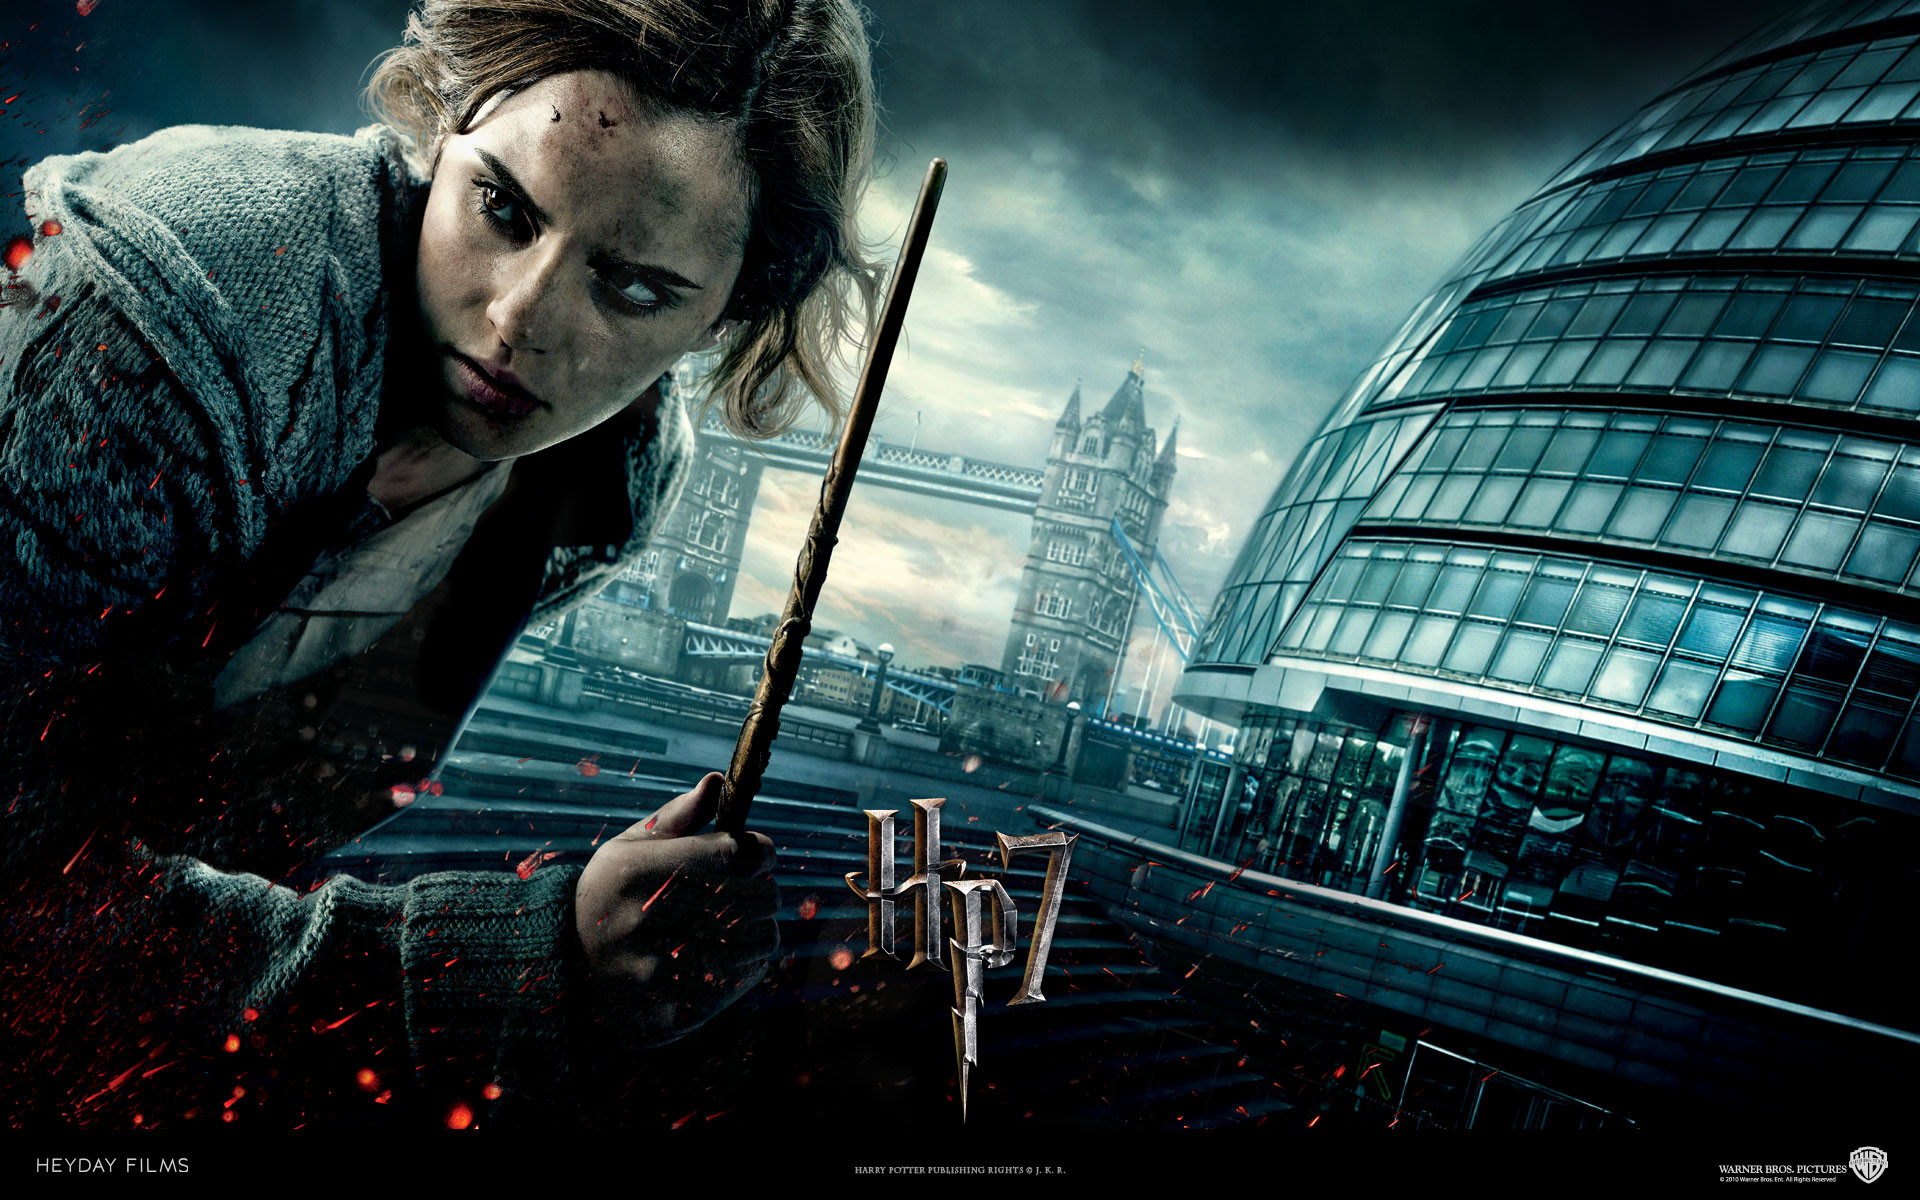 Res: 1920x1200, Hermione Granger from Harry Potter and the Deathly Hallows movie wallpaper